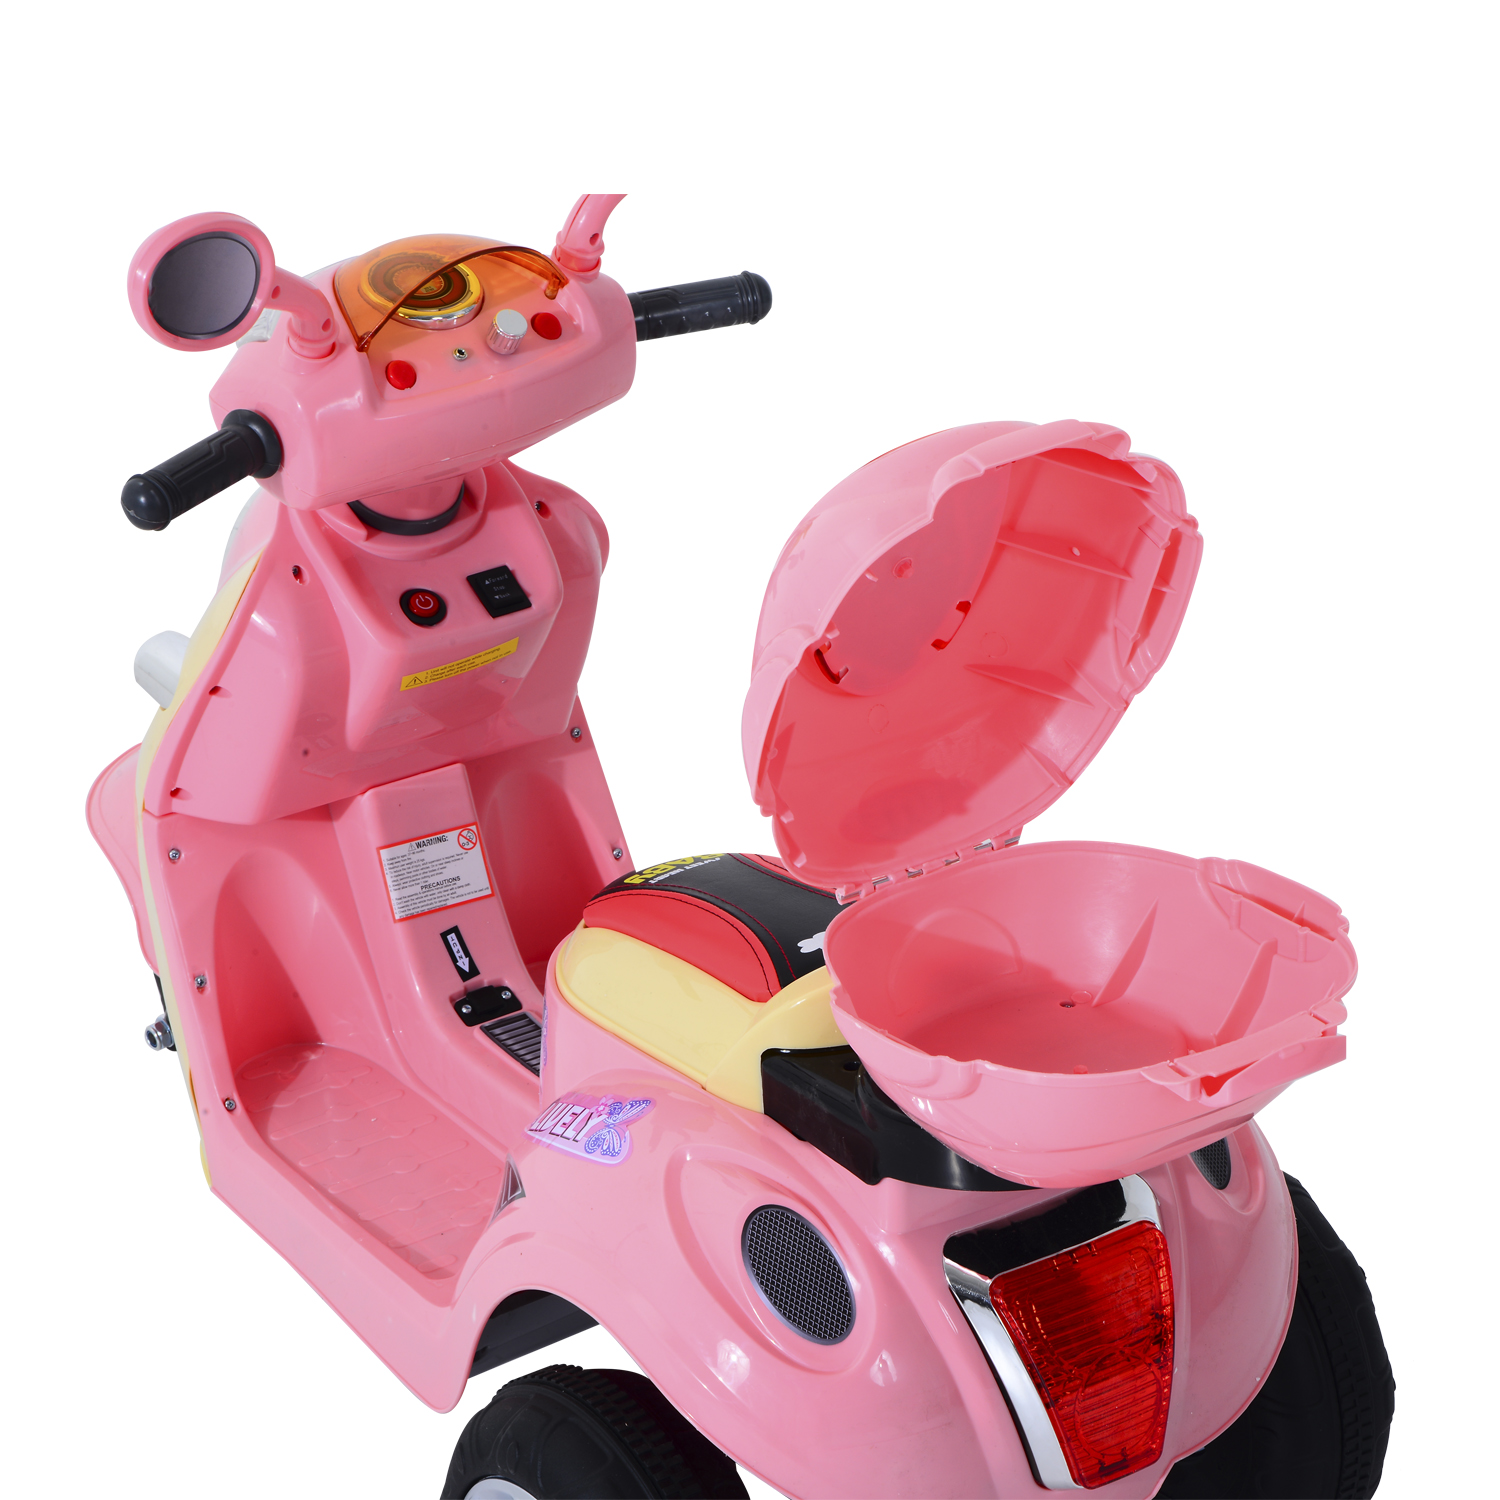 4ae5bea2c17c3 HOMCOM Coche Triciclo Moto Electrica Infantil Correpasillos a Bateria Ninos  3 8 anos 6V Metal + PP 108x51x75cm Rosa-in Ride On Cars from Toys   Hobbies  on ...